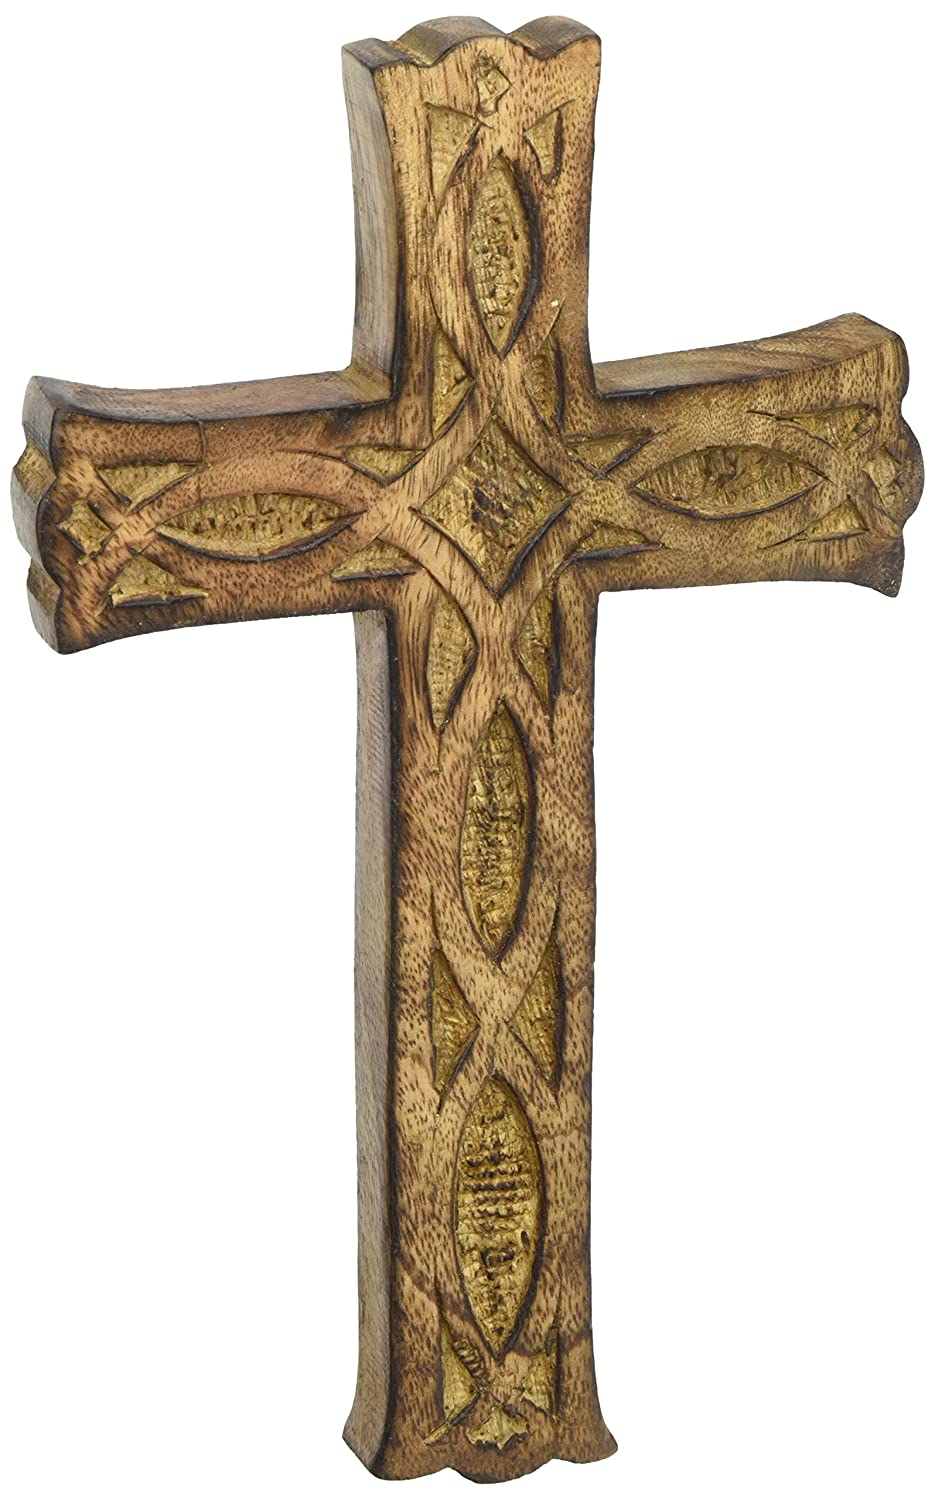 Hosley's Wooden Cross 8 Long. Ideal Gift or Decoration for Home, Weddings, Party, Spa, Meditation, Home Office, Spa, Dorm FBA_FBA-G57563ON-1-EA